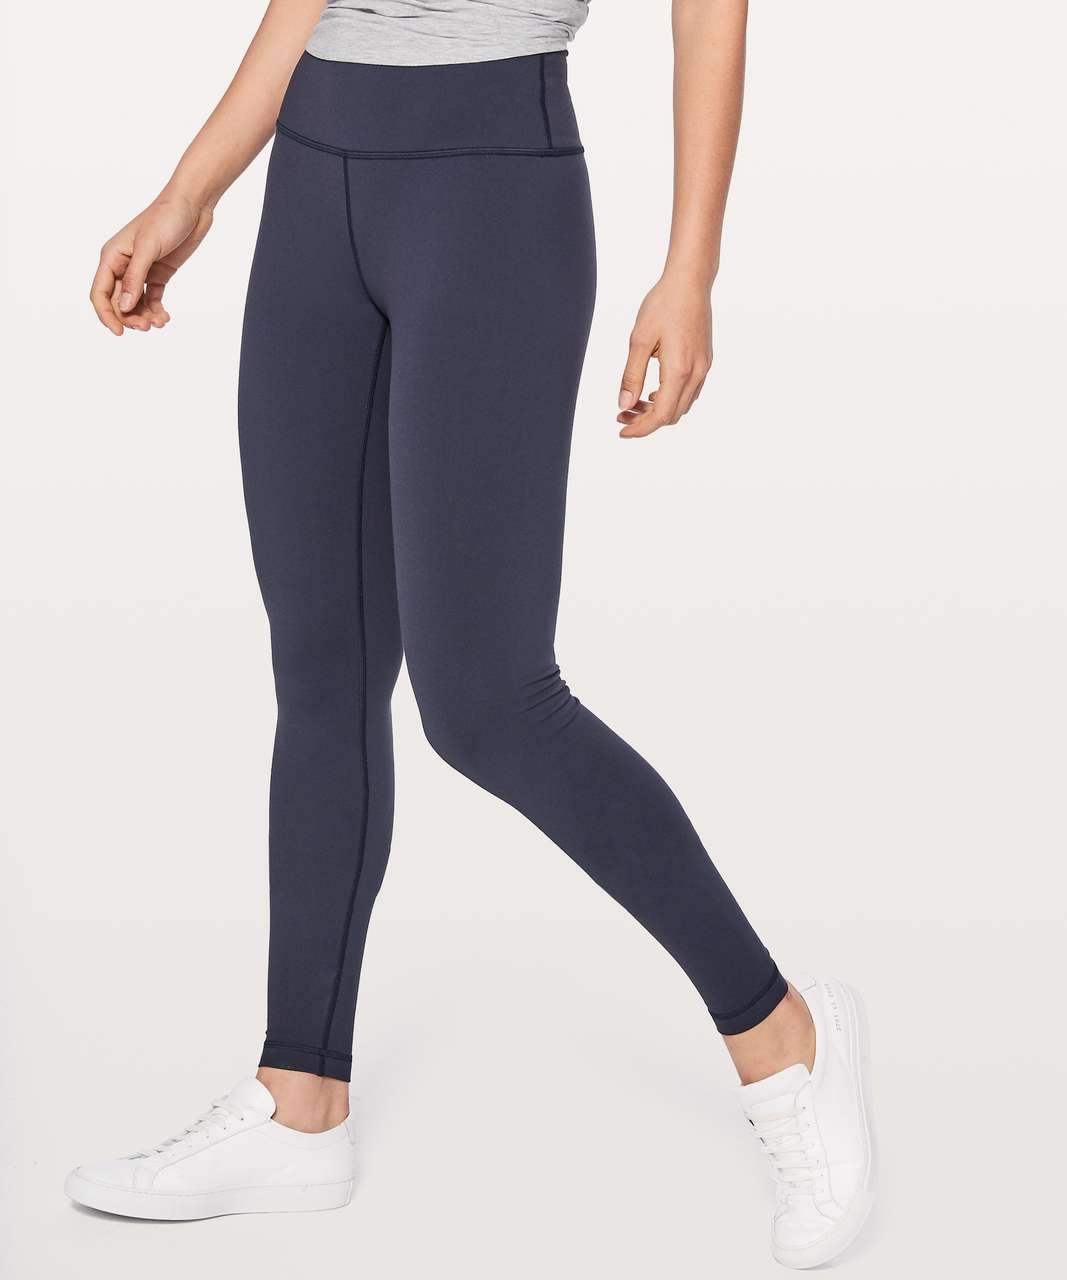 7bbdc87574ad41 Lululemon Wunder Under Hi-Rise Tight Full-On Luon Tall 31 ...